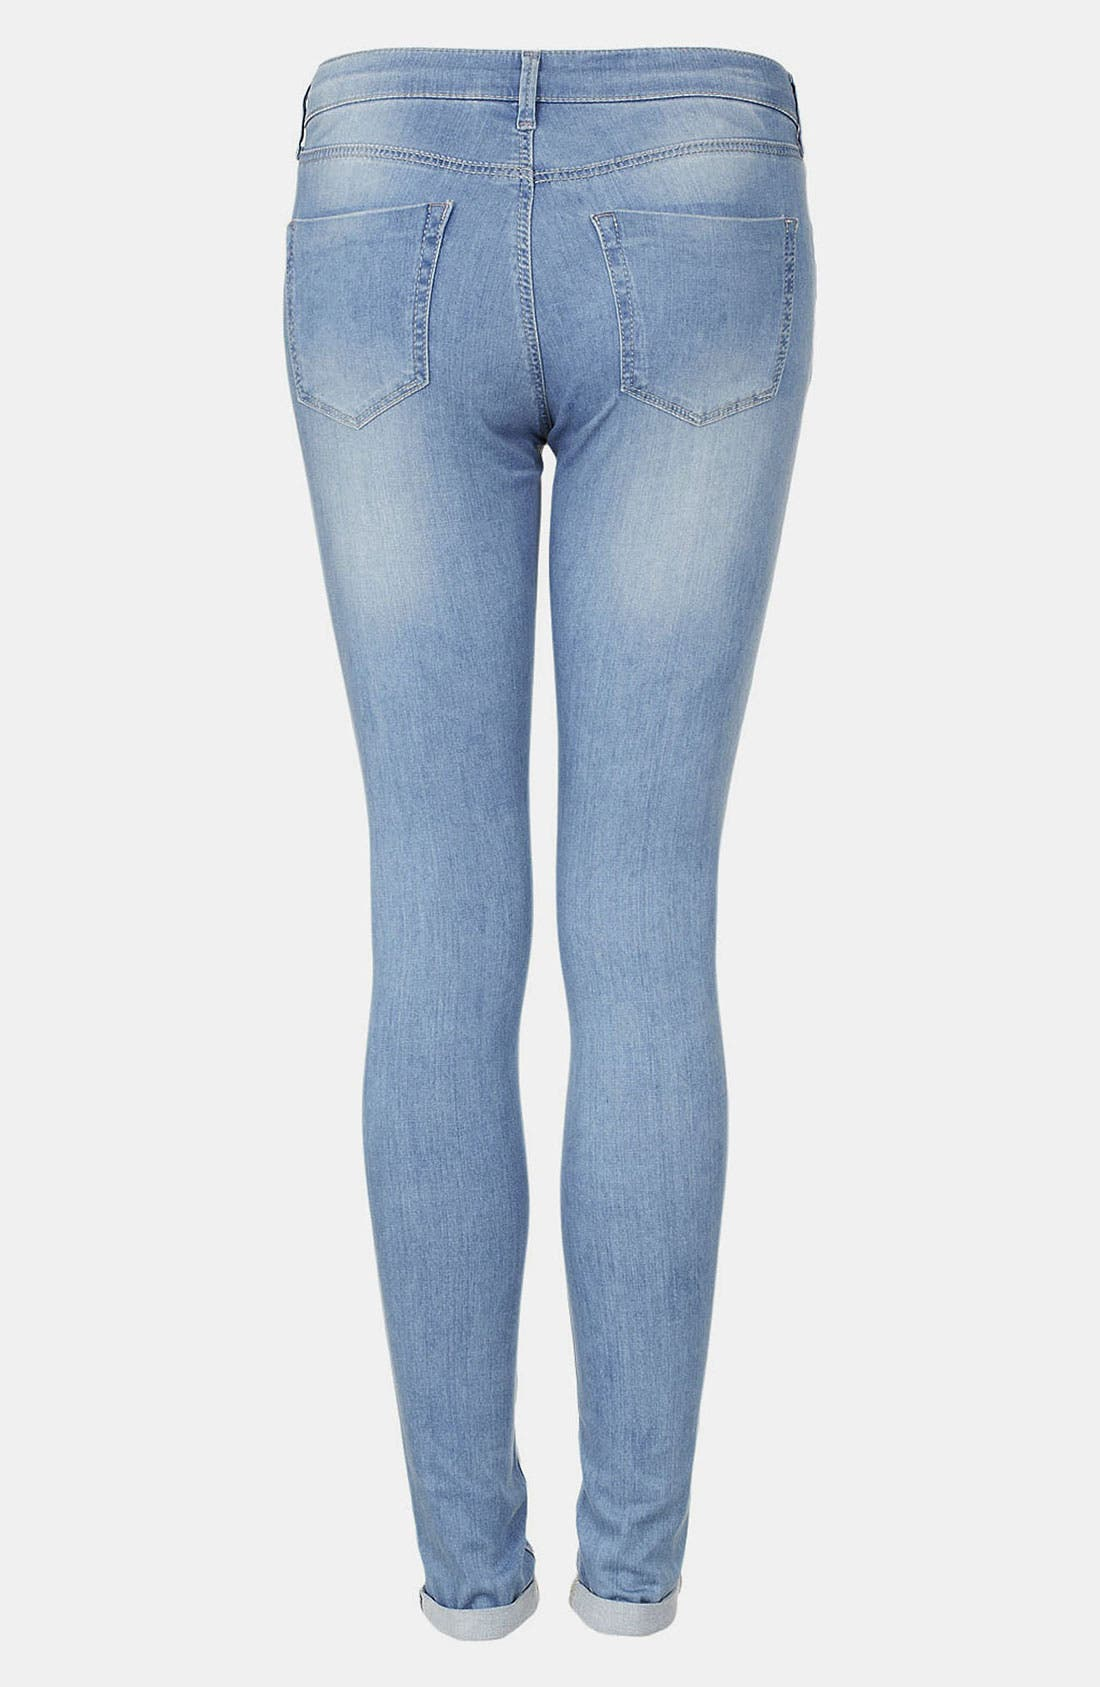 Alternate Image 2  - Topshop Moto 'Leigh' Bleach Wash Skinny Jeans (Regular & Short)